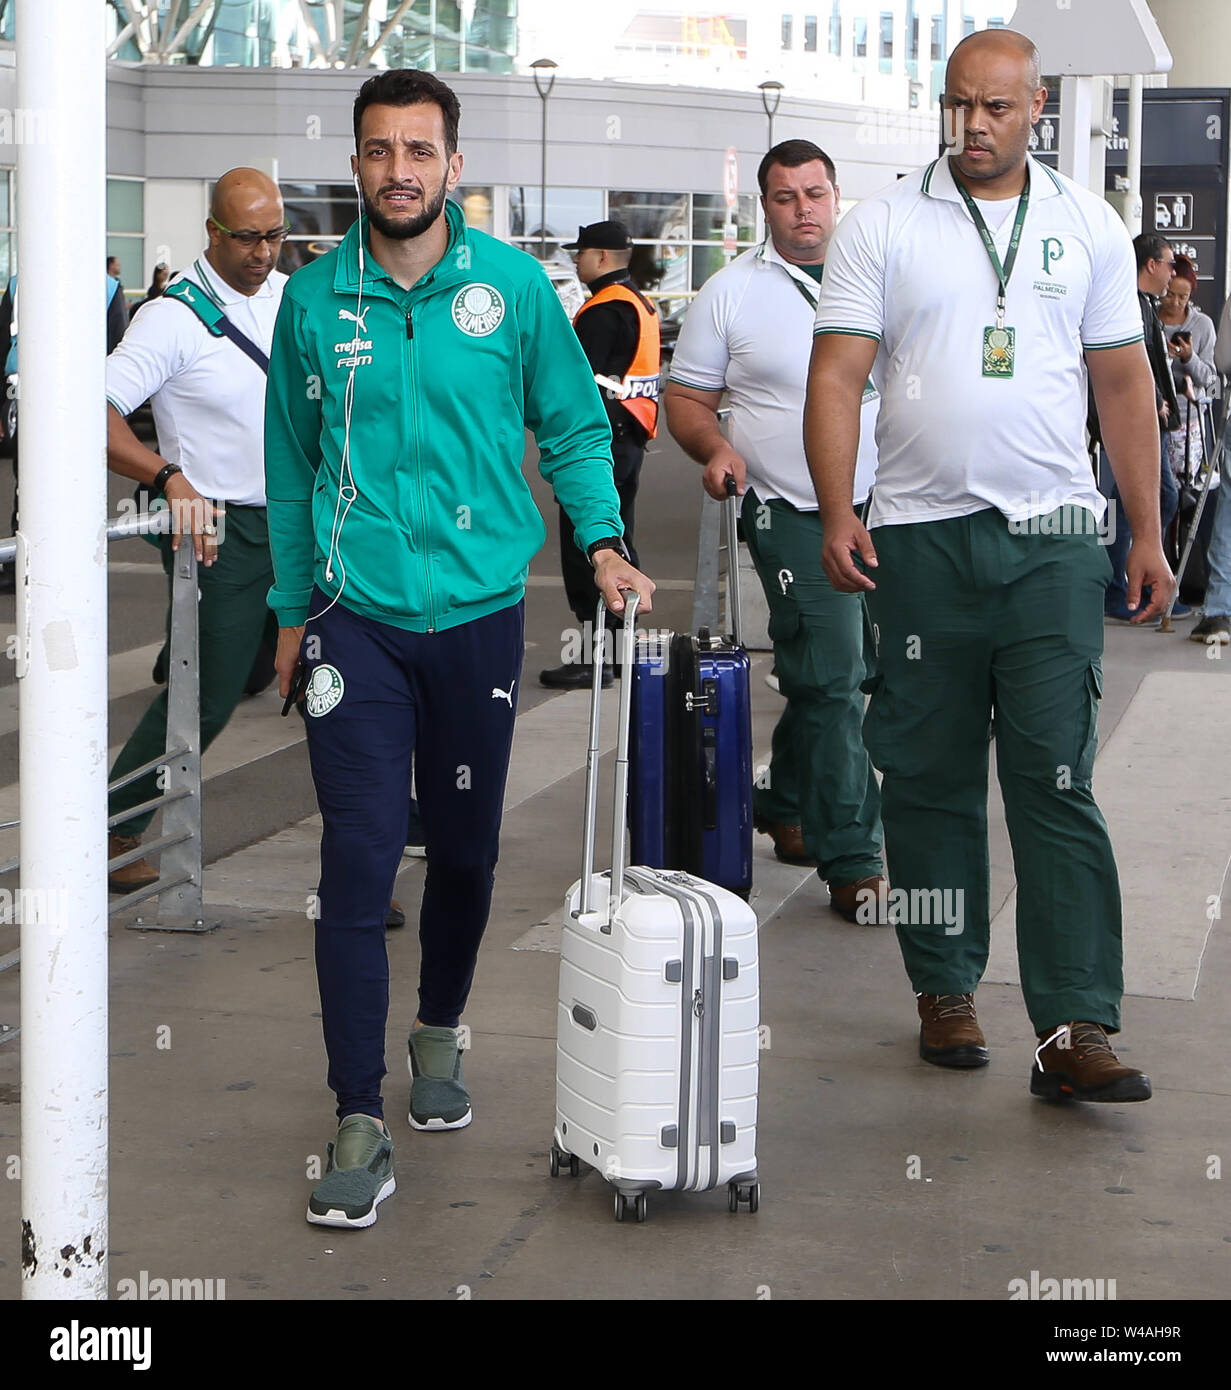 Buenos Aires, Argentina. 21st July, 2019. Edu Dracena, from SE Palmeiras, during disembarkation, at Buenos Aires International Airport. Credit: Cesar Greco/FotoArena/Alamy Live News - Stock Image